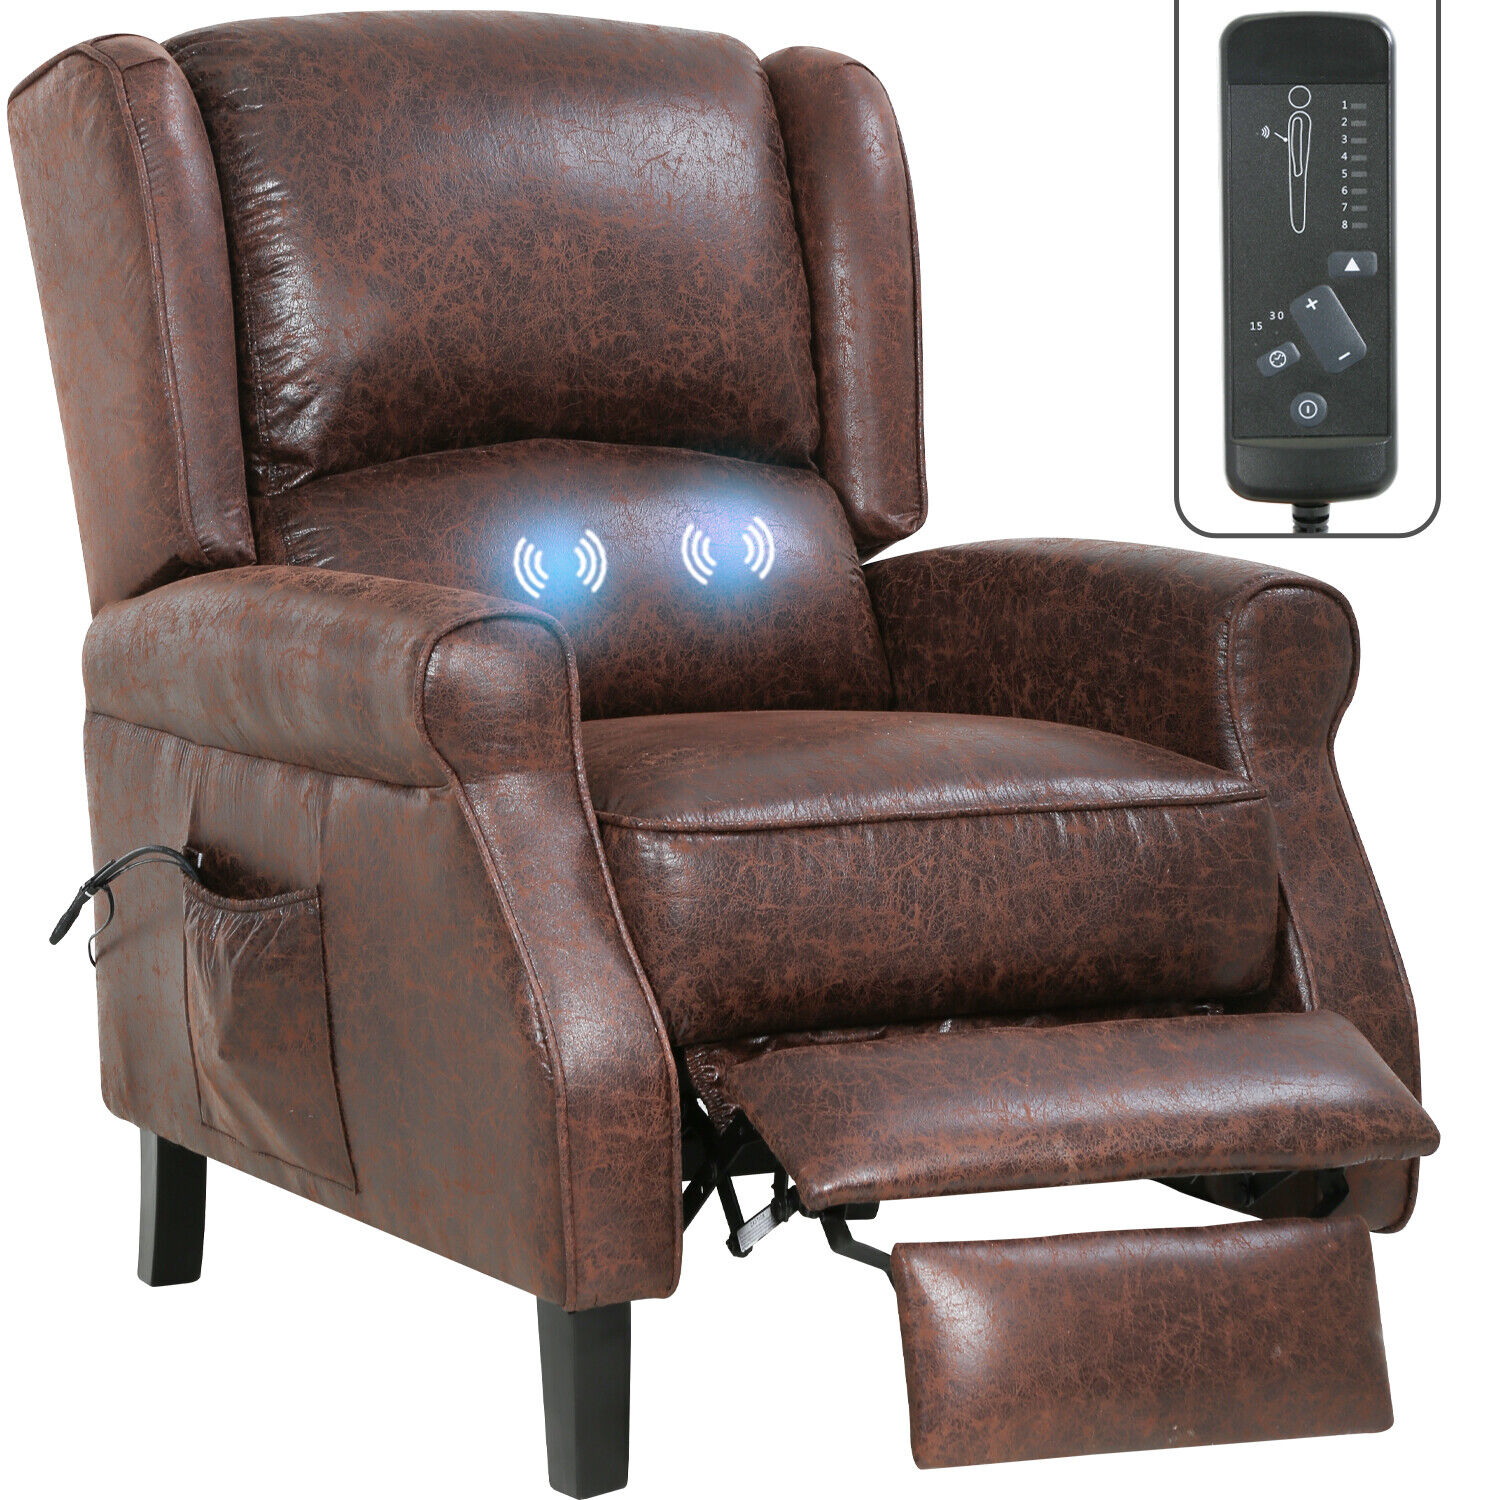 Recliner Chair for Living Room Massage Recliner Sofa Reading Chair Winback Singl Chairs